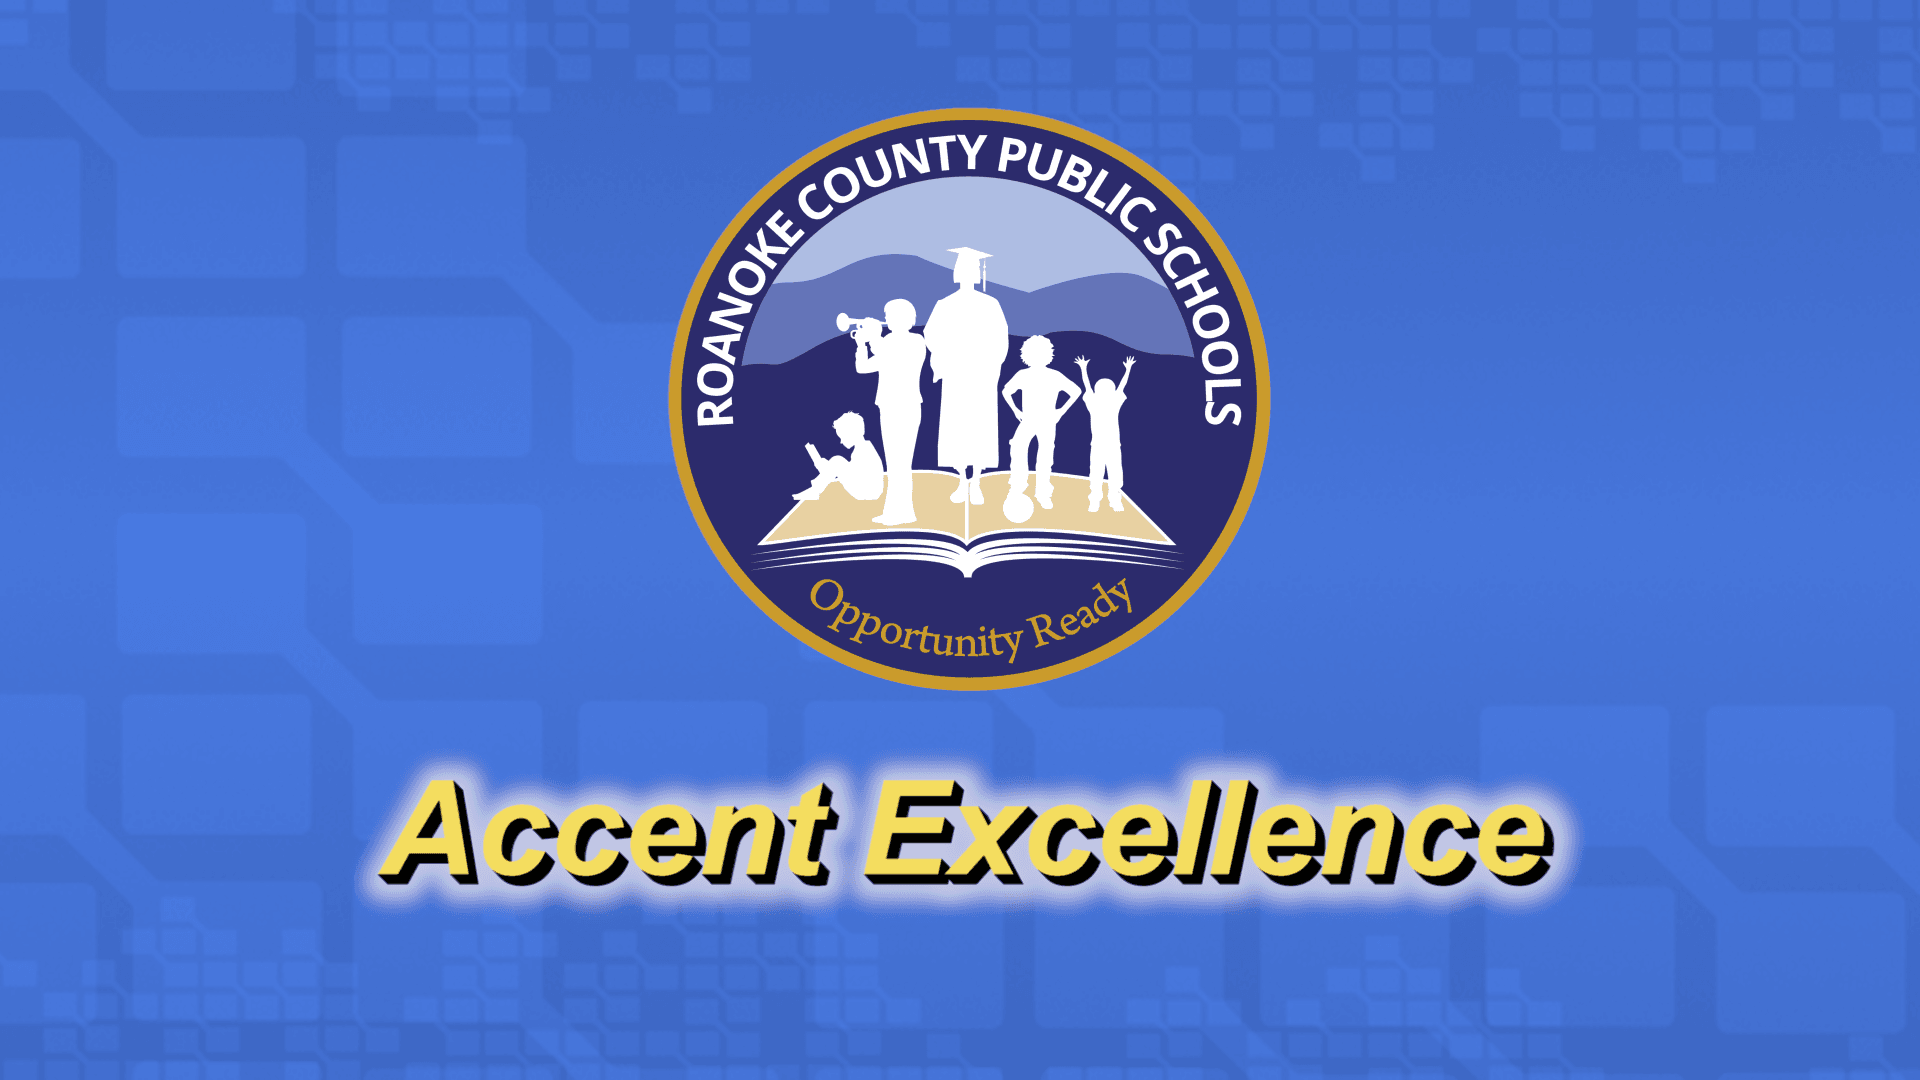 Roanoke County Public Schools Logo, Accent Excellence